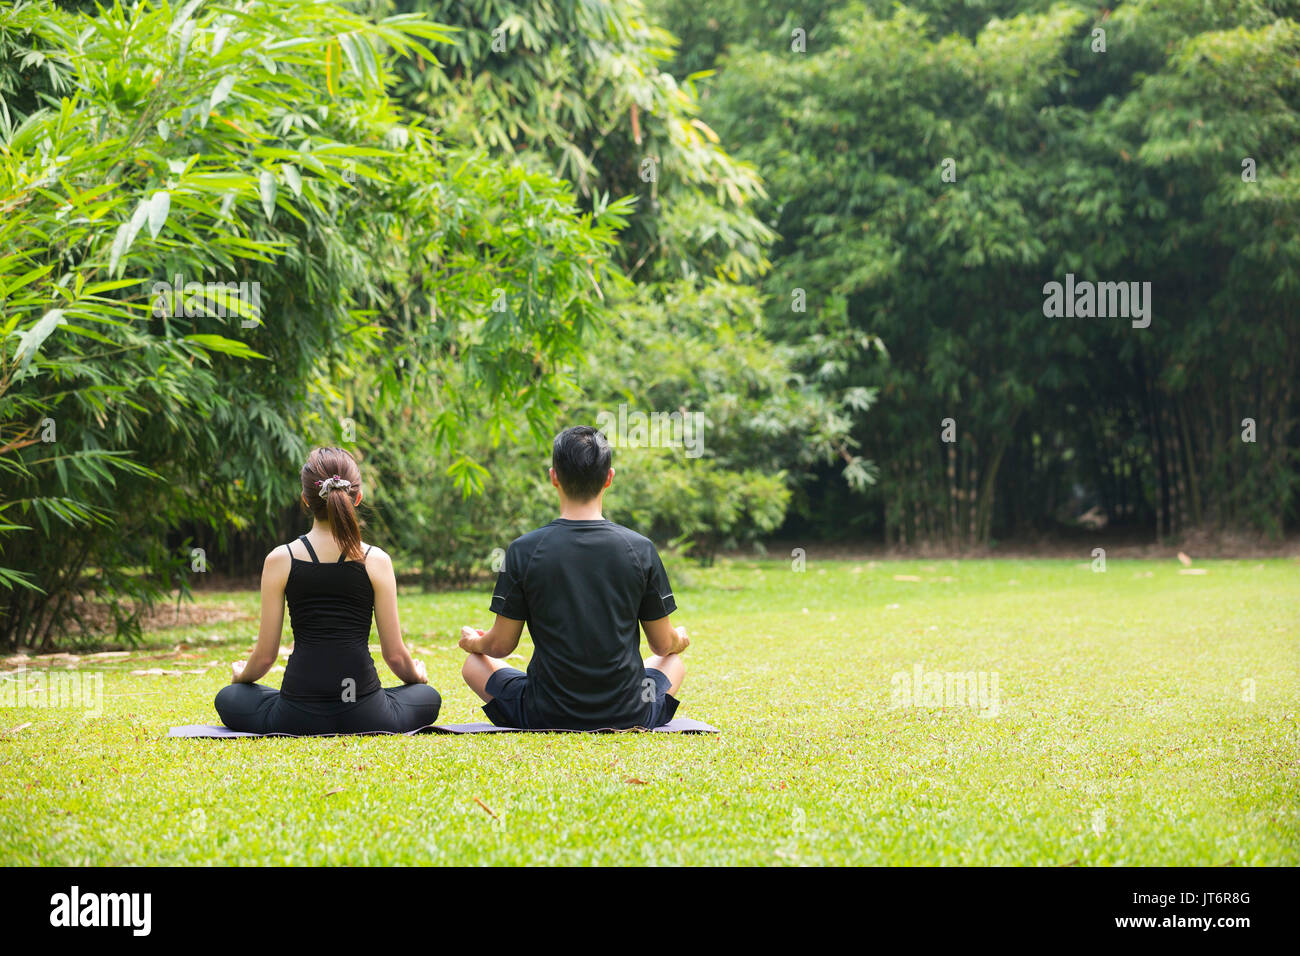 Asian Man and woman doing Tai Chi in a garden. Healthy lifestyle and ...